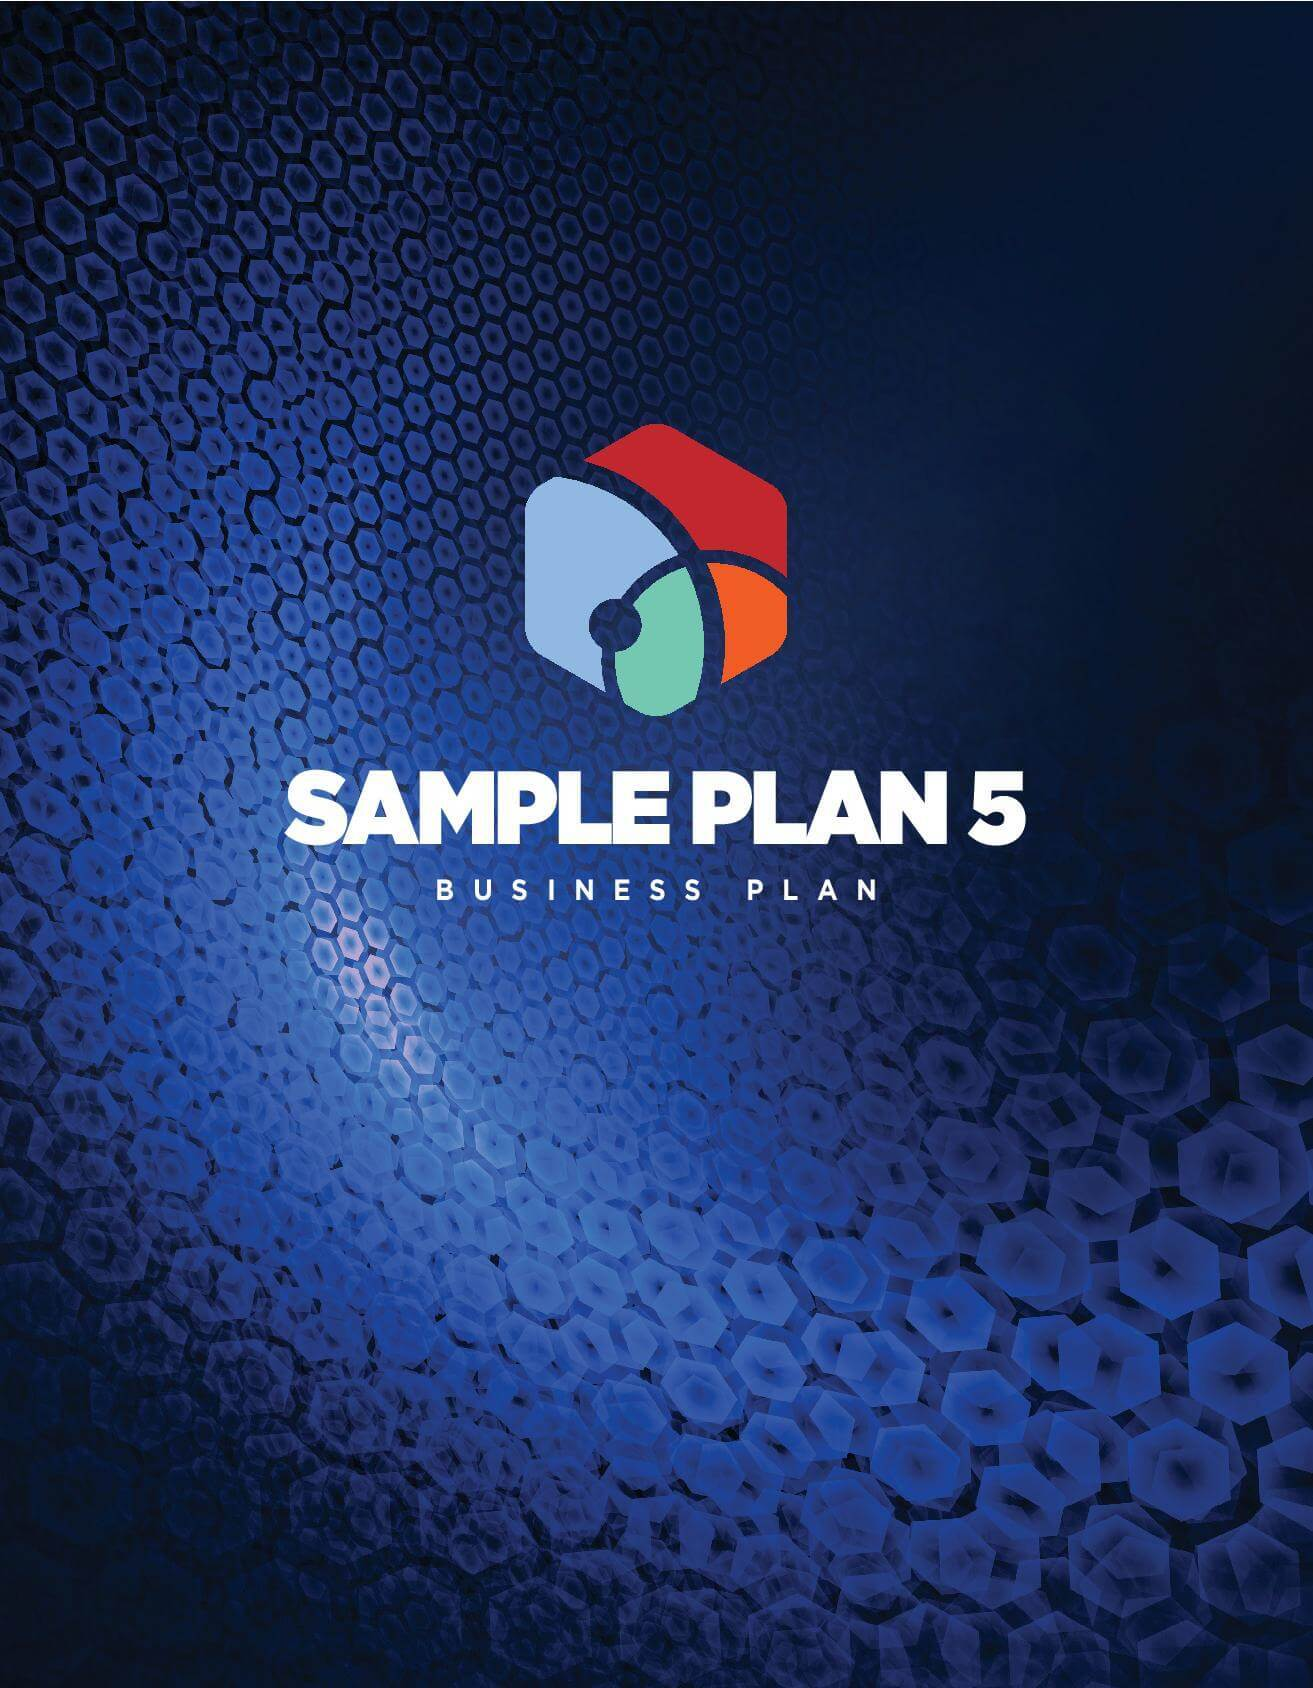 Business Plan Sample 1